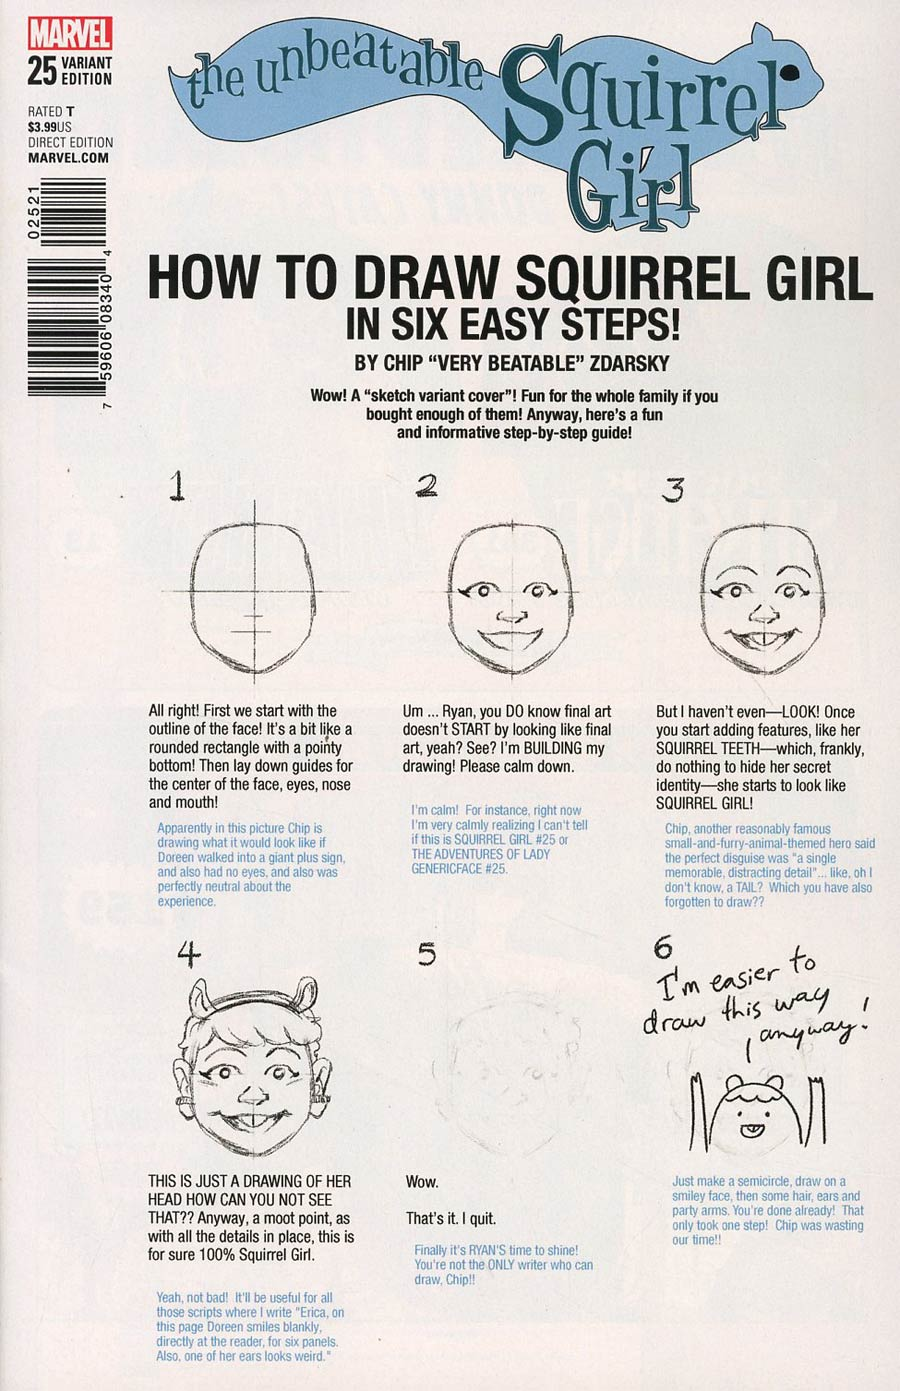 Unbeatable Squirrel Girl Vol 2 #25 Cover B Variant Chip Zdarsky How-To-Draw Cover